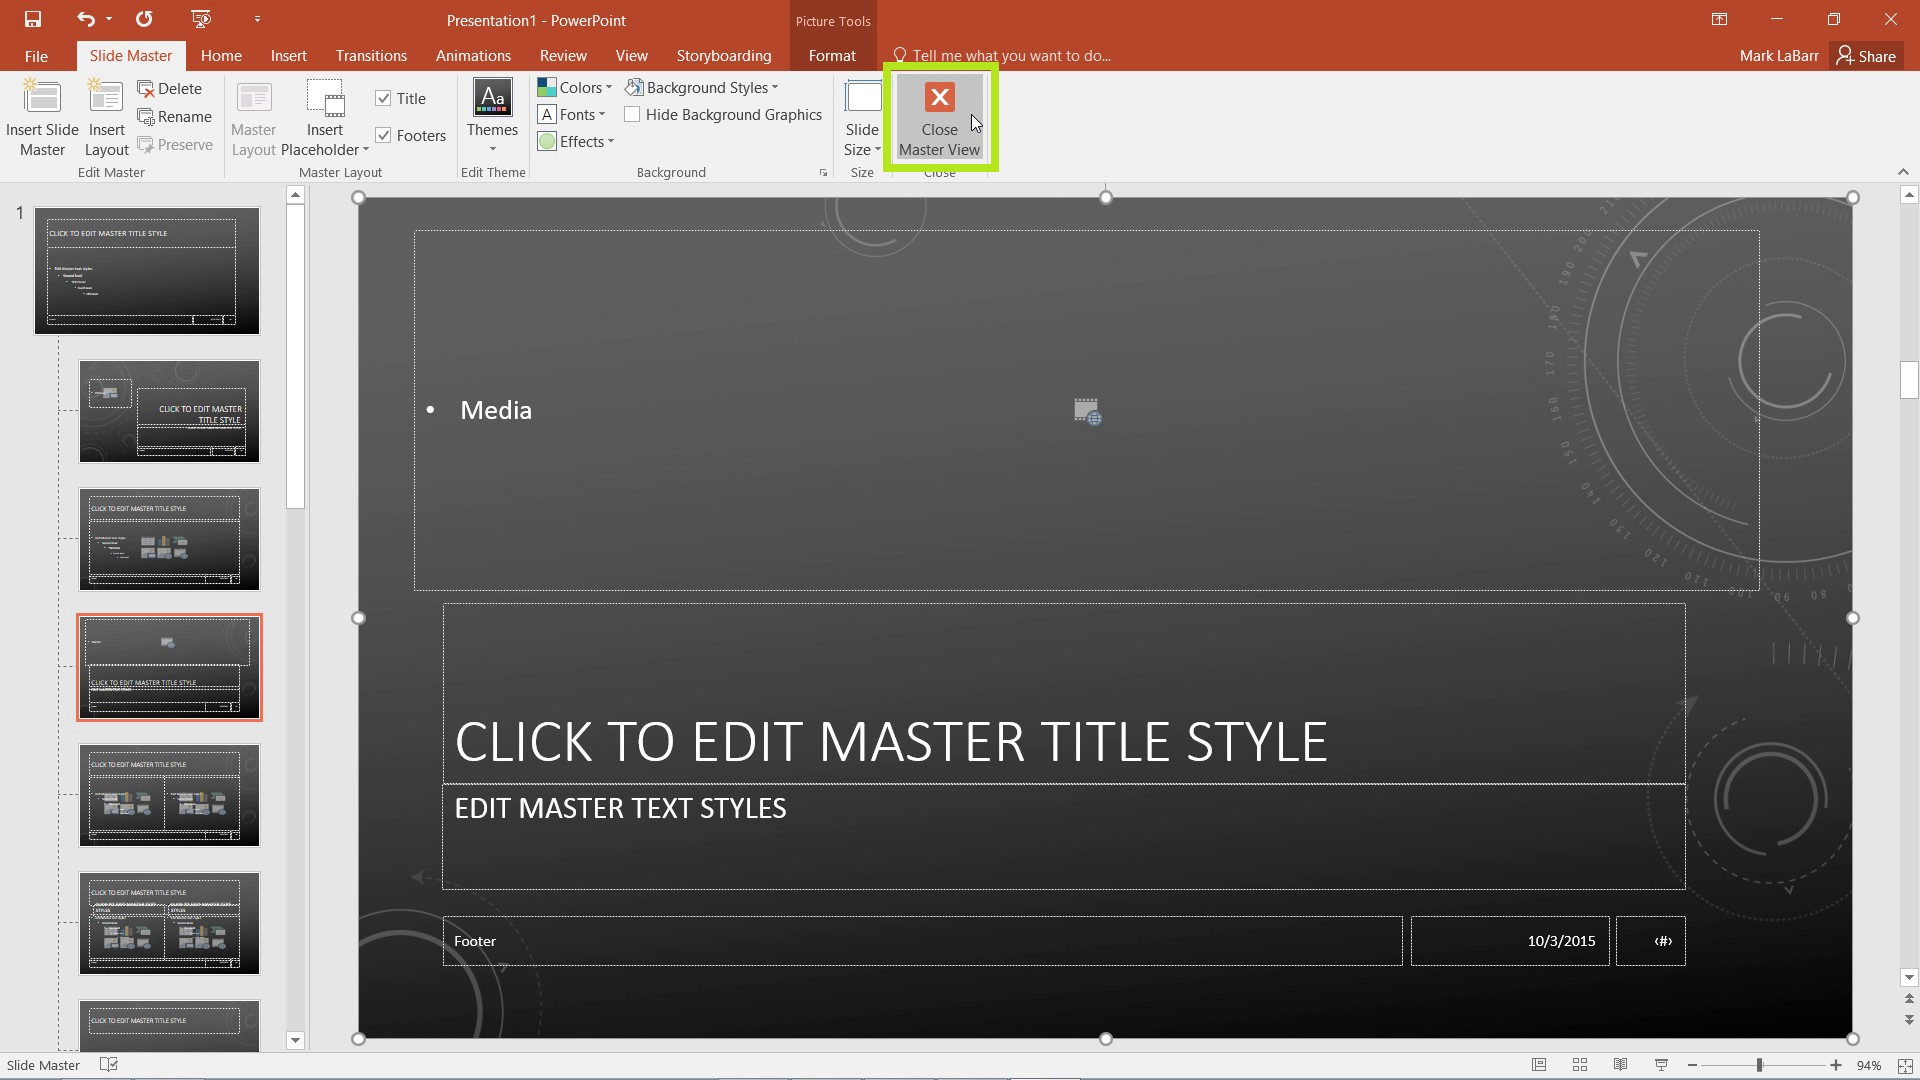 Make Custom Themes in PowerPoint 2016